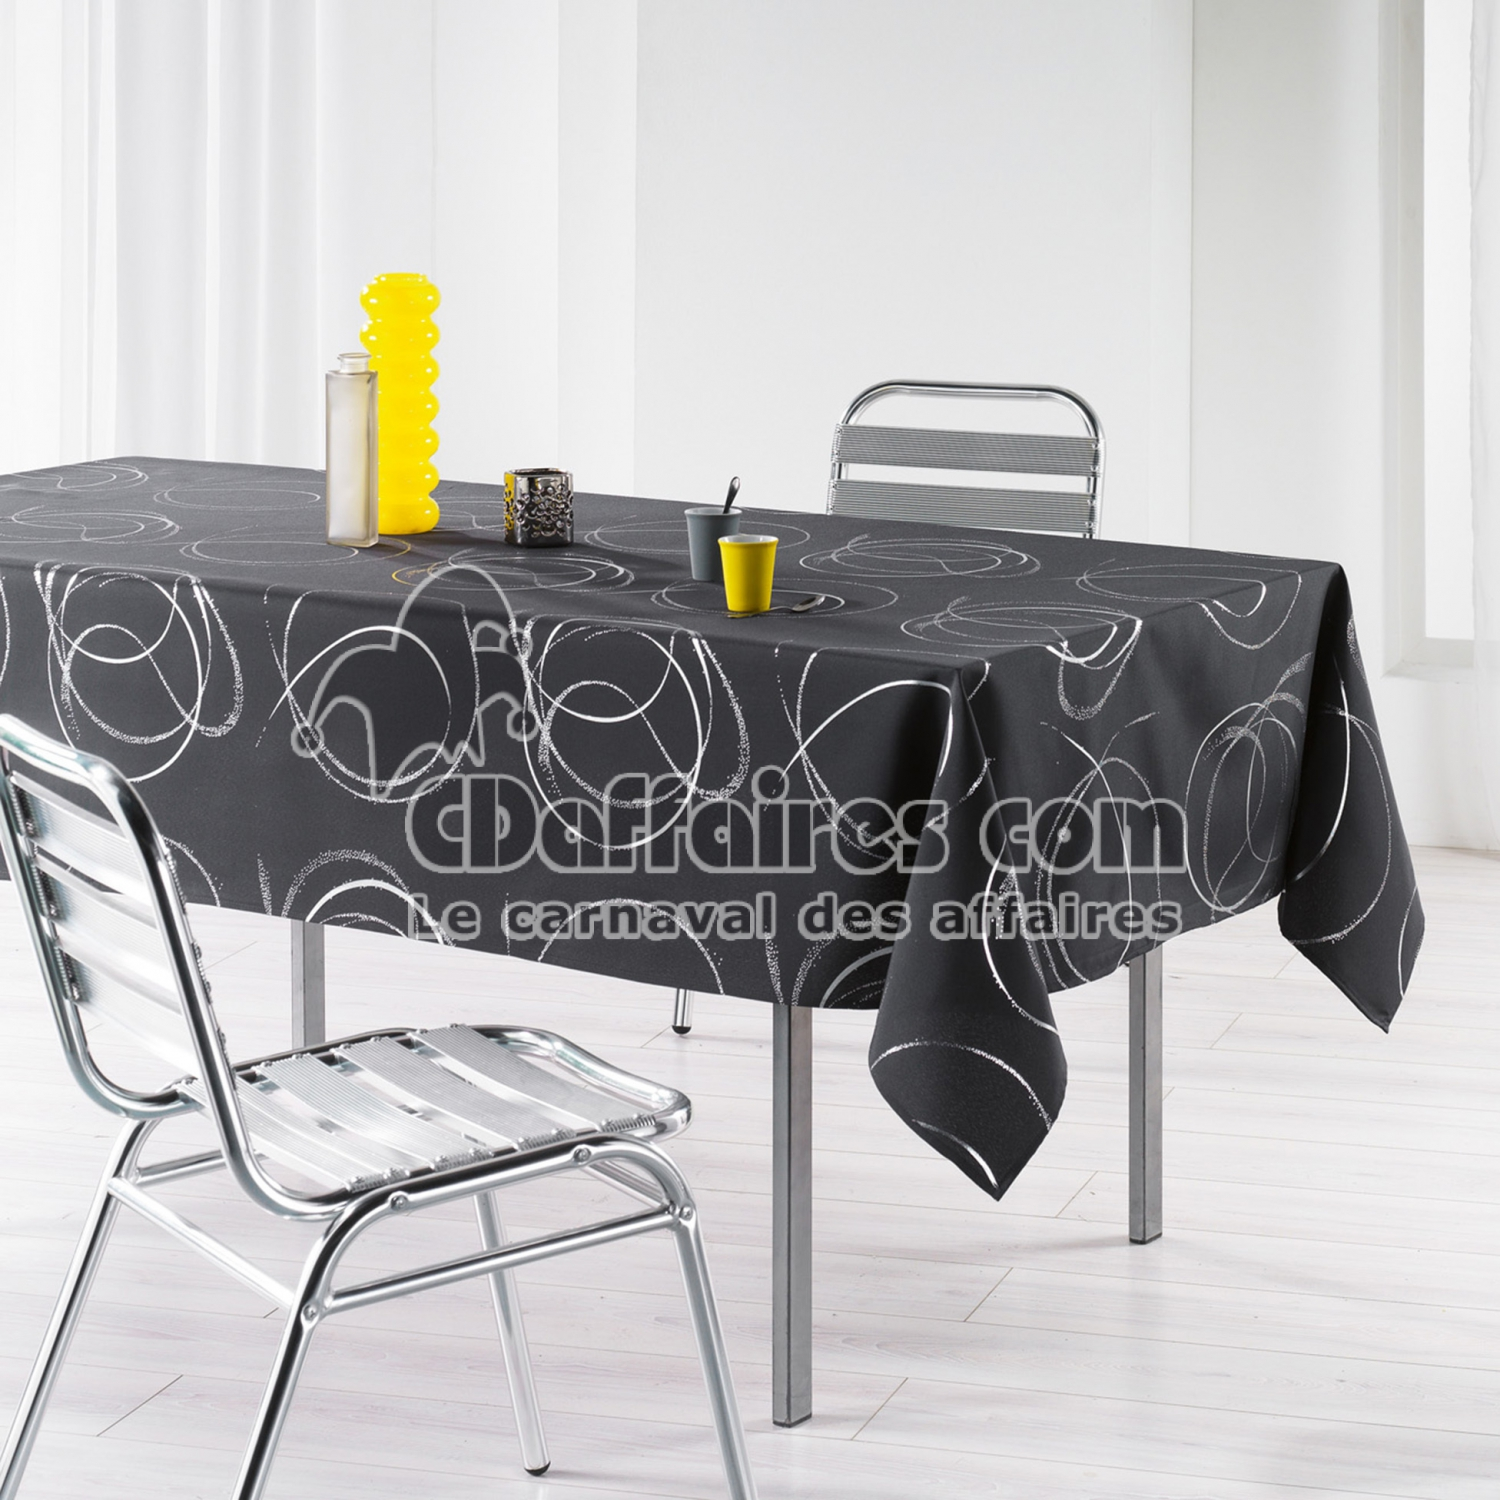 nappe rectangle 150 x 240 cm polyester imprime argent bully anthracite cdaffaires. Black Bedroom Furniture Sets. Home Design Ideas